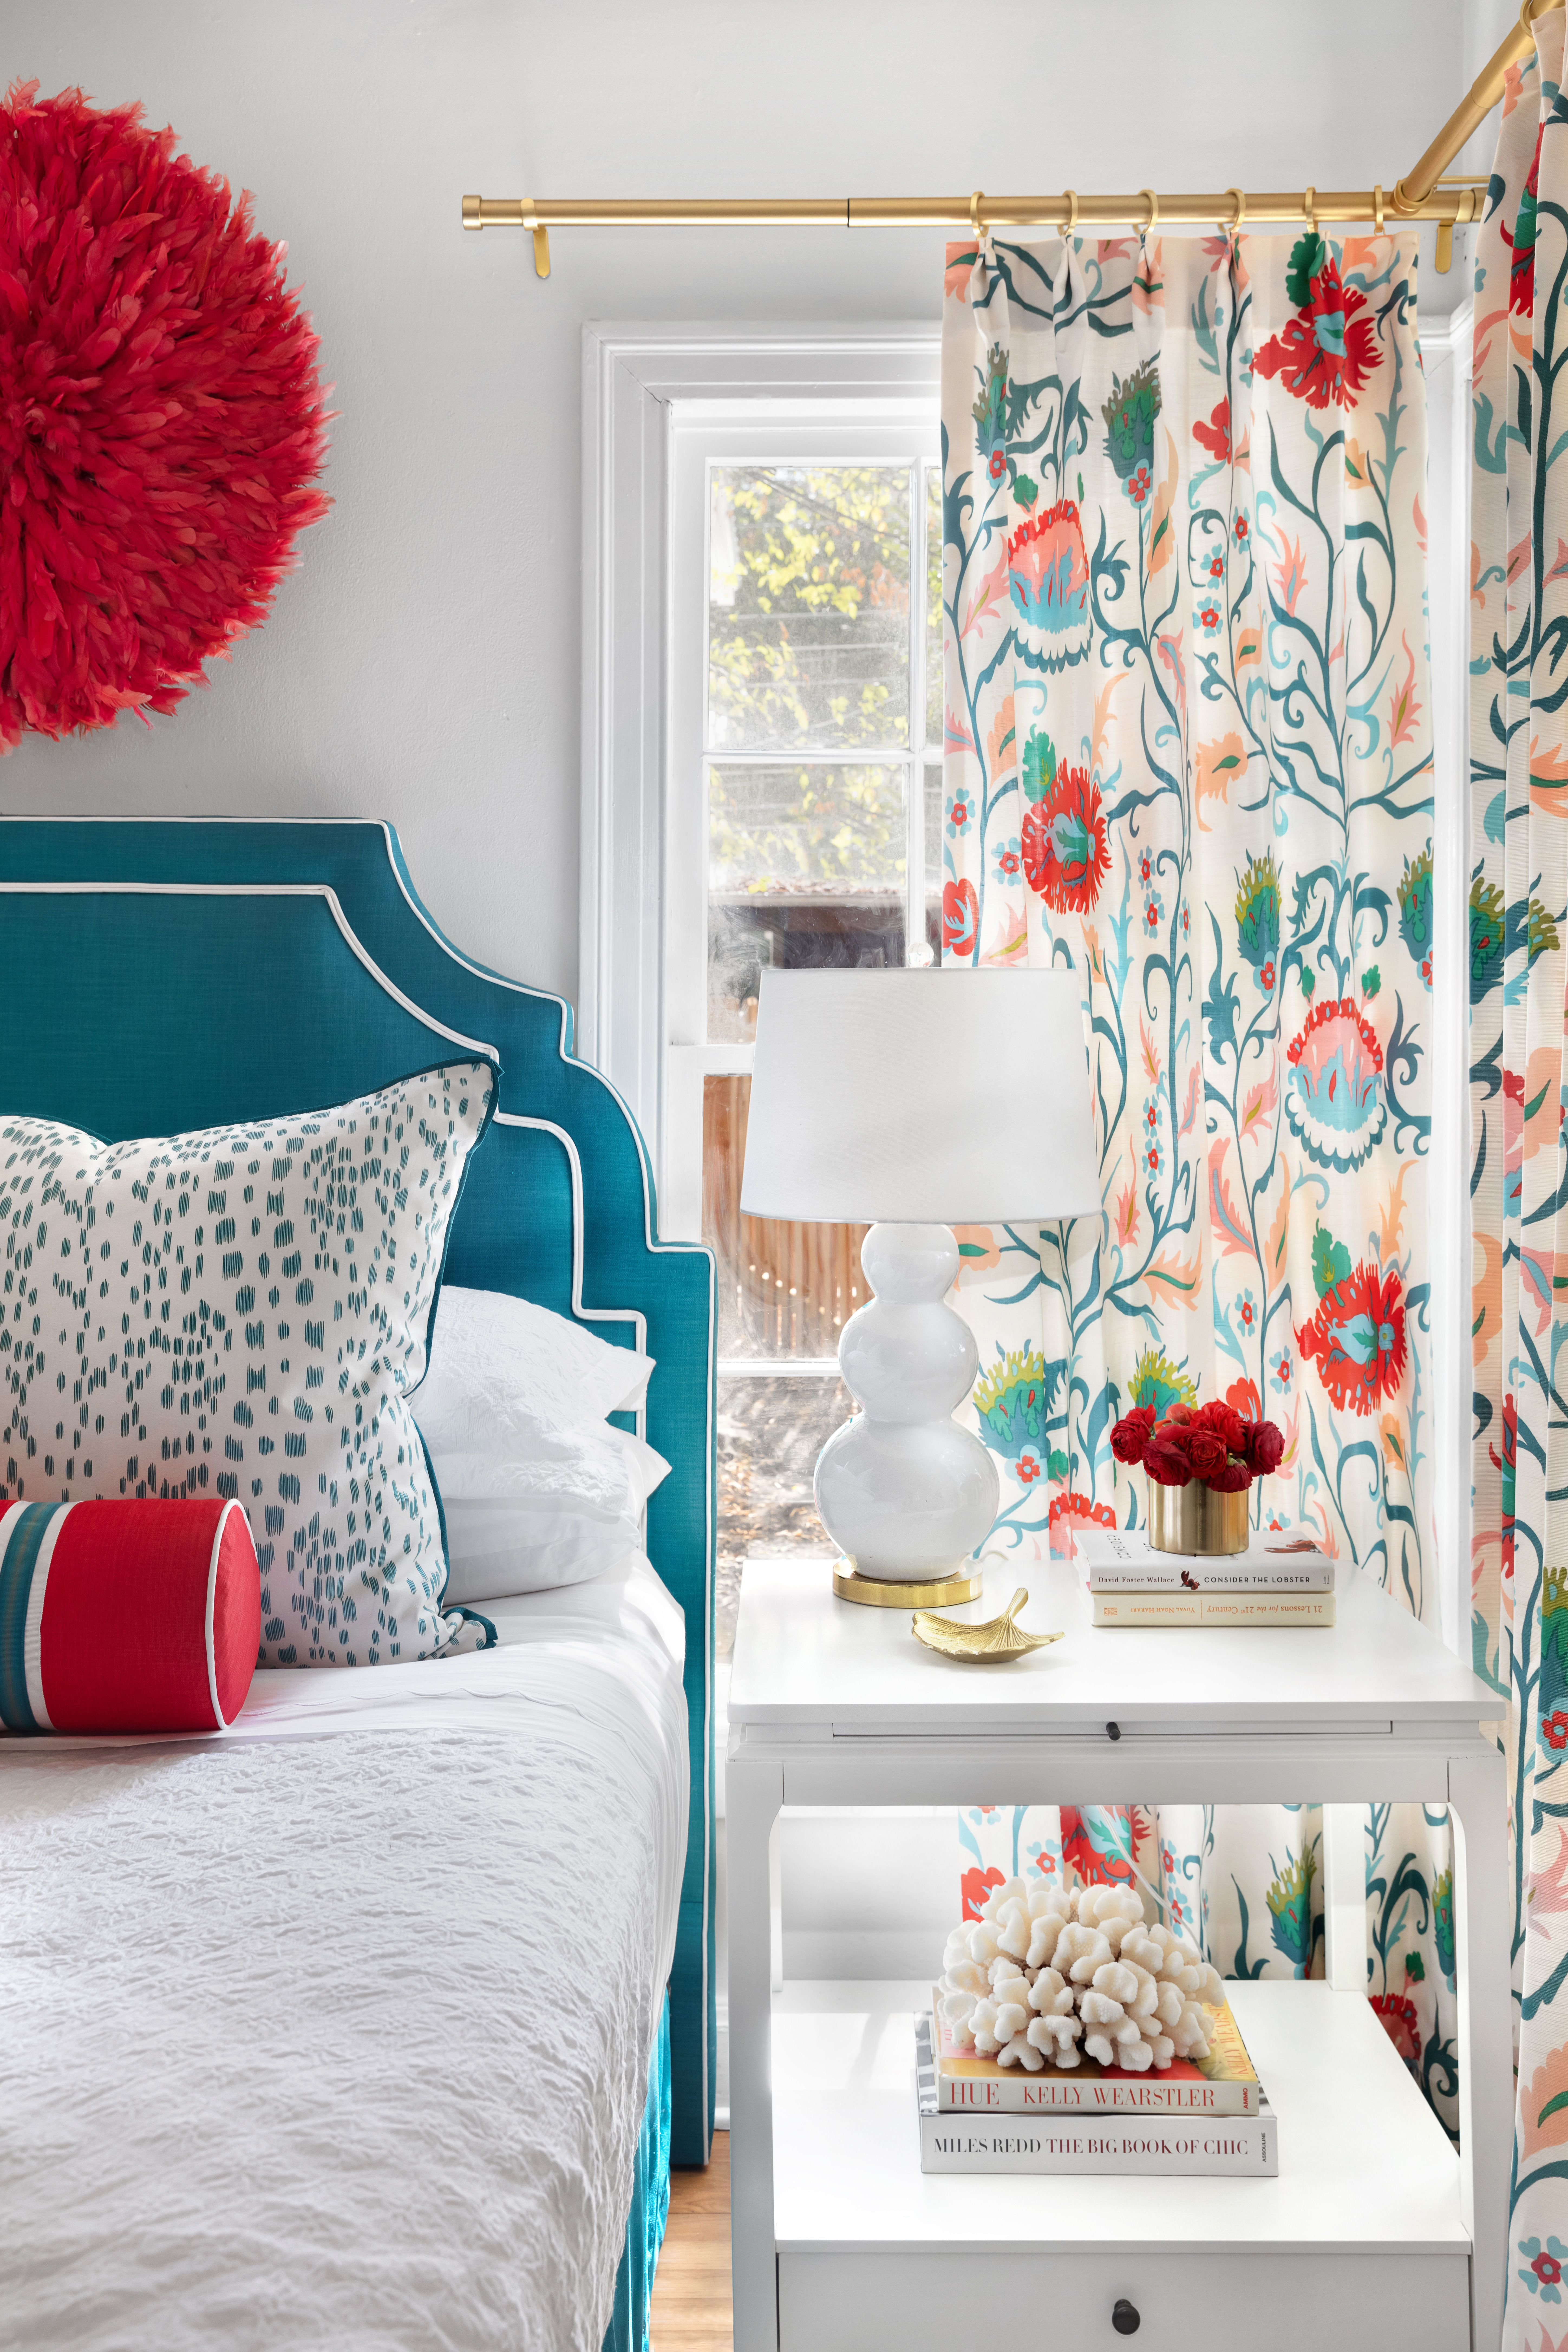 Teal And Red Guest Bedroom Design With Patterns In 2020 Teal Rooms Teal Bedroom Decor Teal Living Room Decor #red #and #teal #living #room #ideas